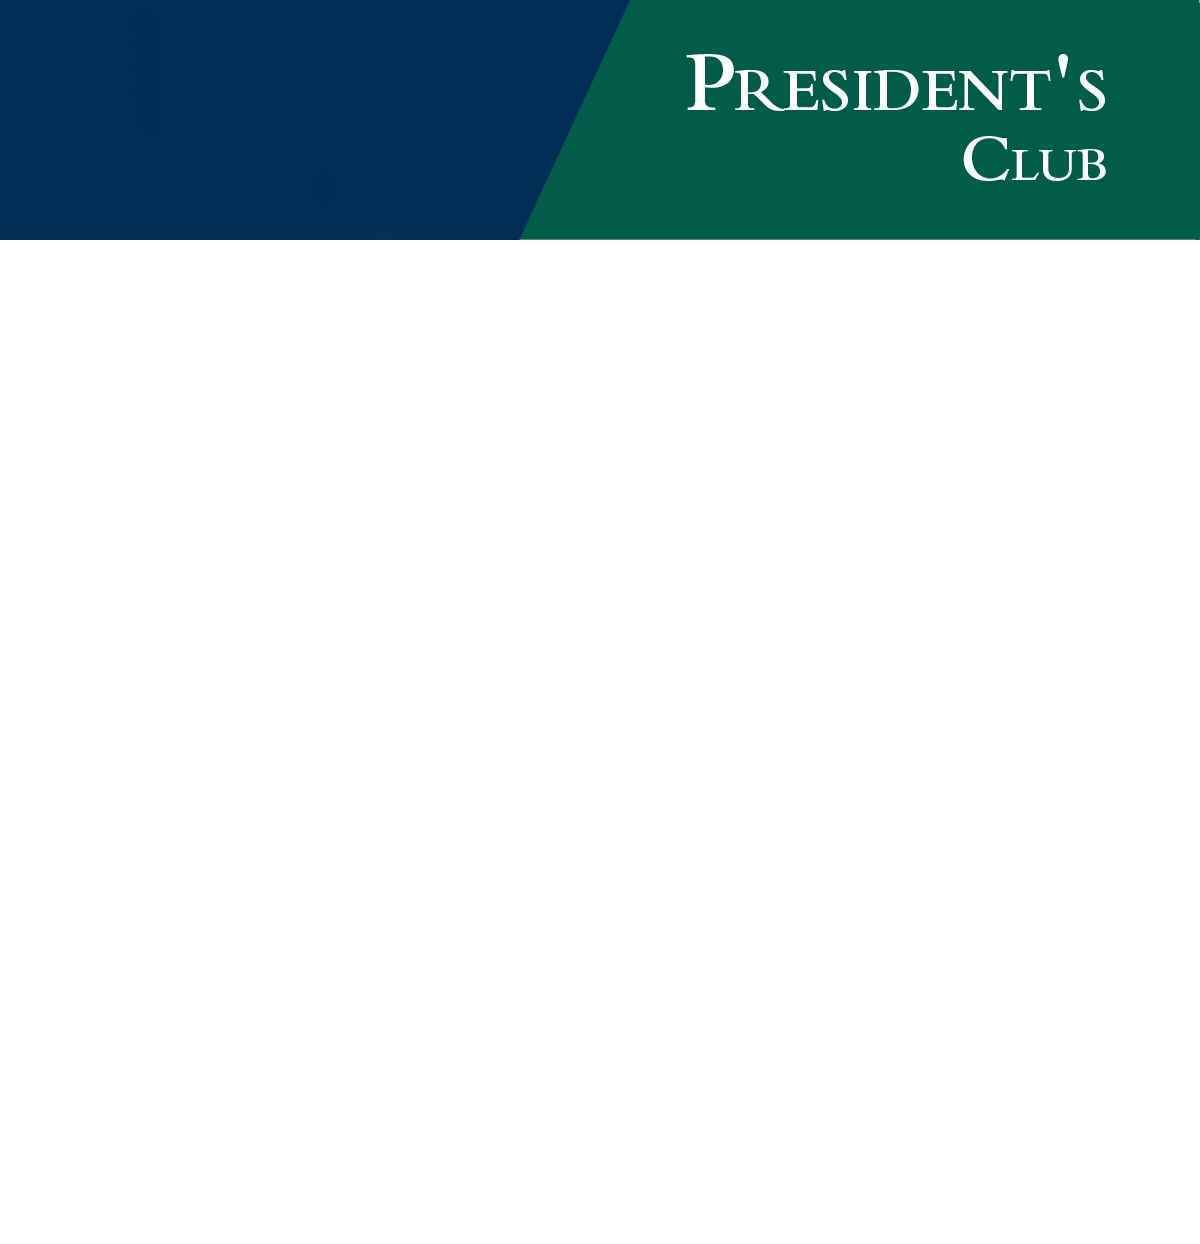 Join the President's Club image